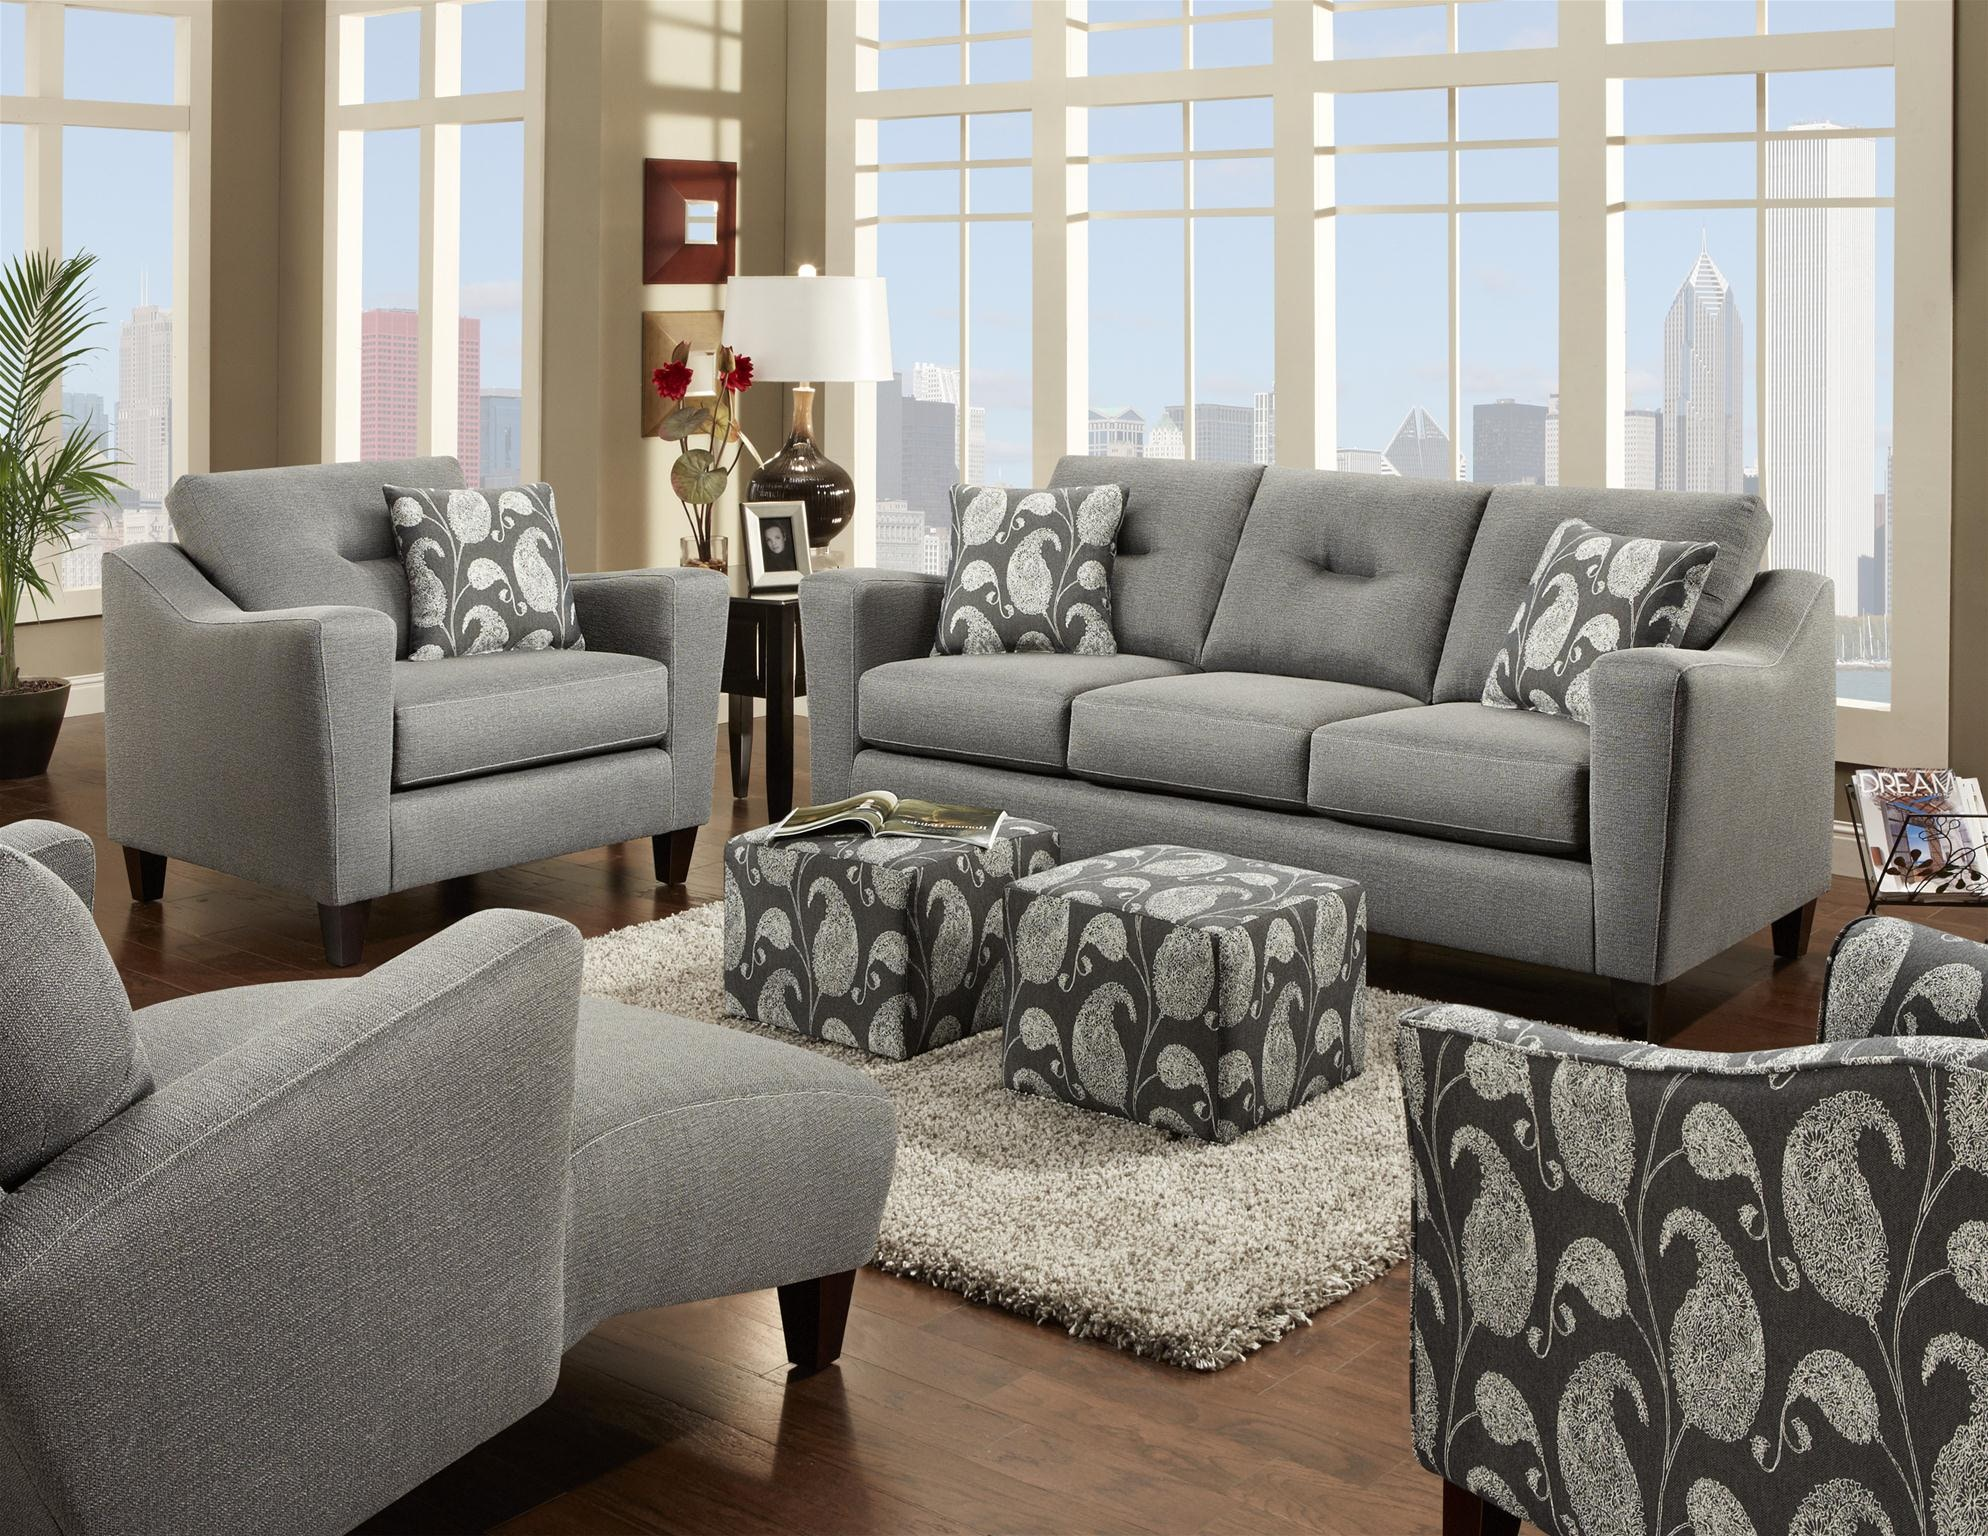 Fusion Living Room Chair 8102Apex Cinder At B.F. Myers Furniture